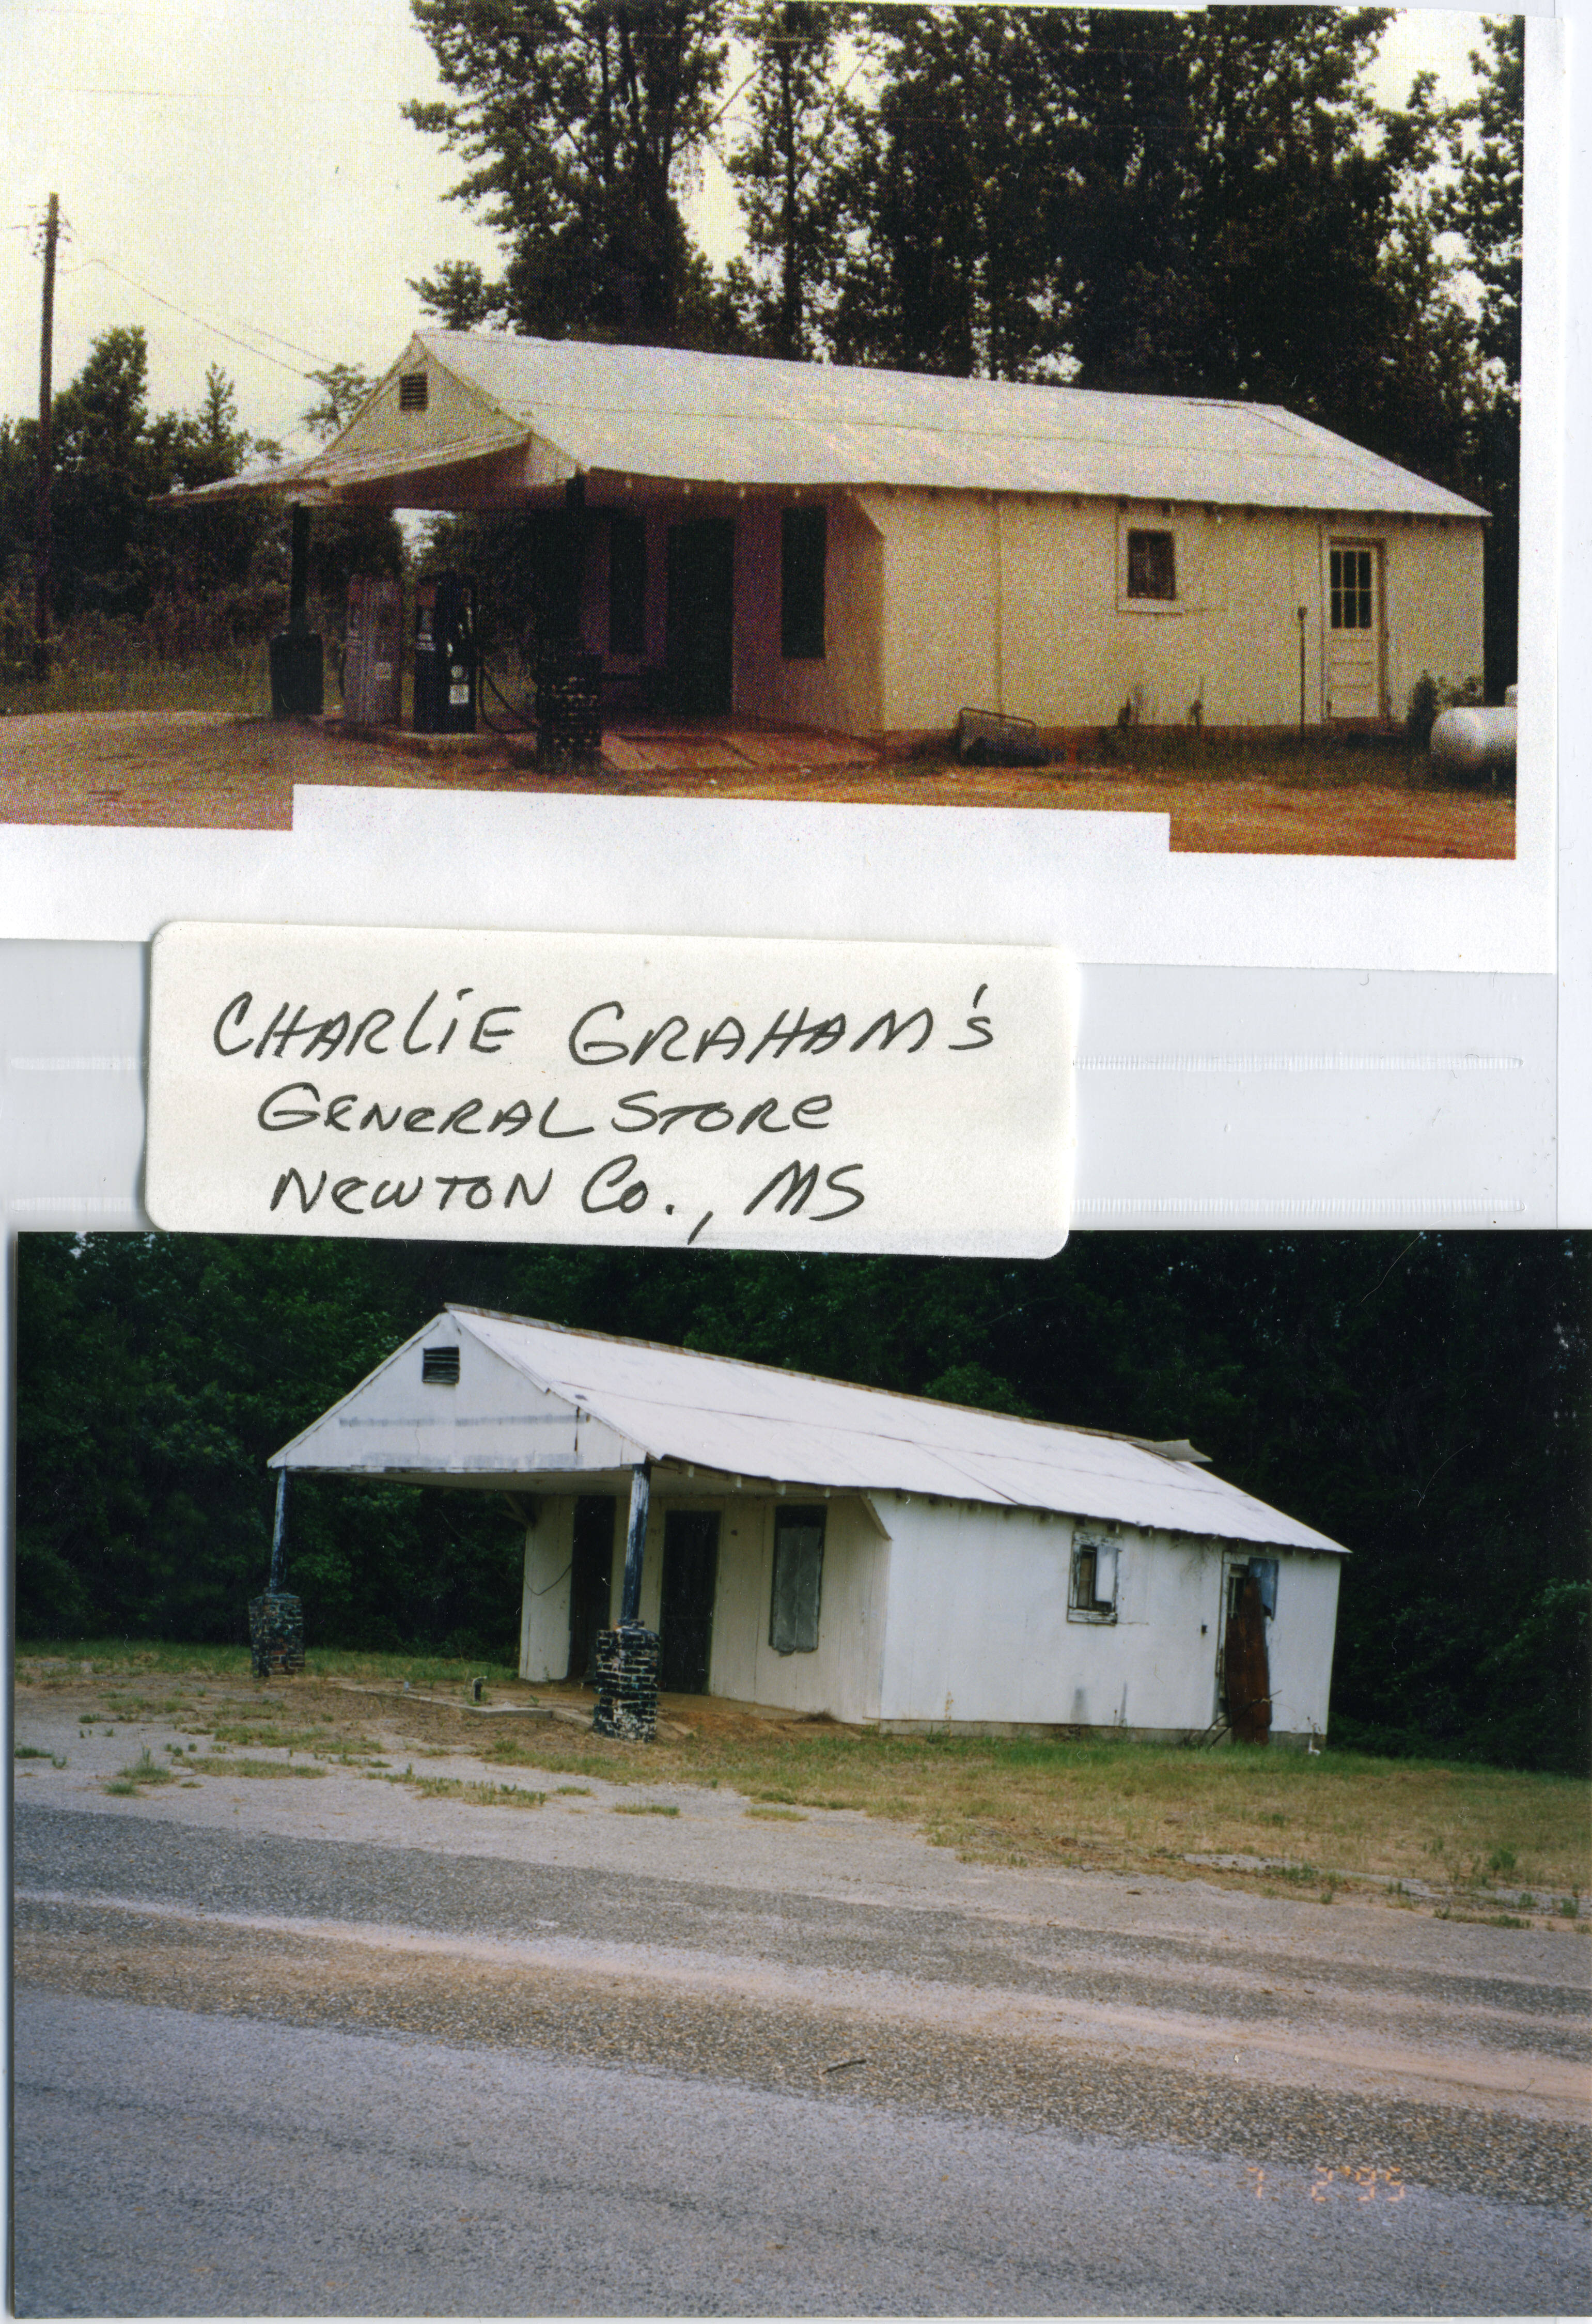 Mississippi newton county decatur - Charlie Graham General Store Newton County Ms